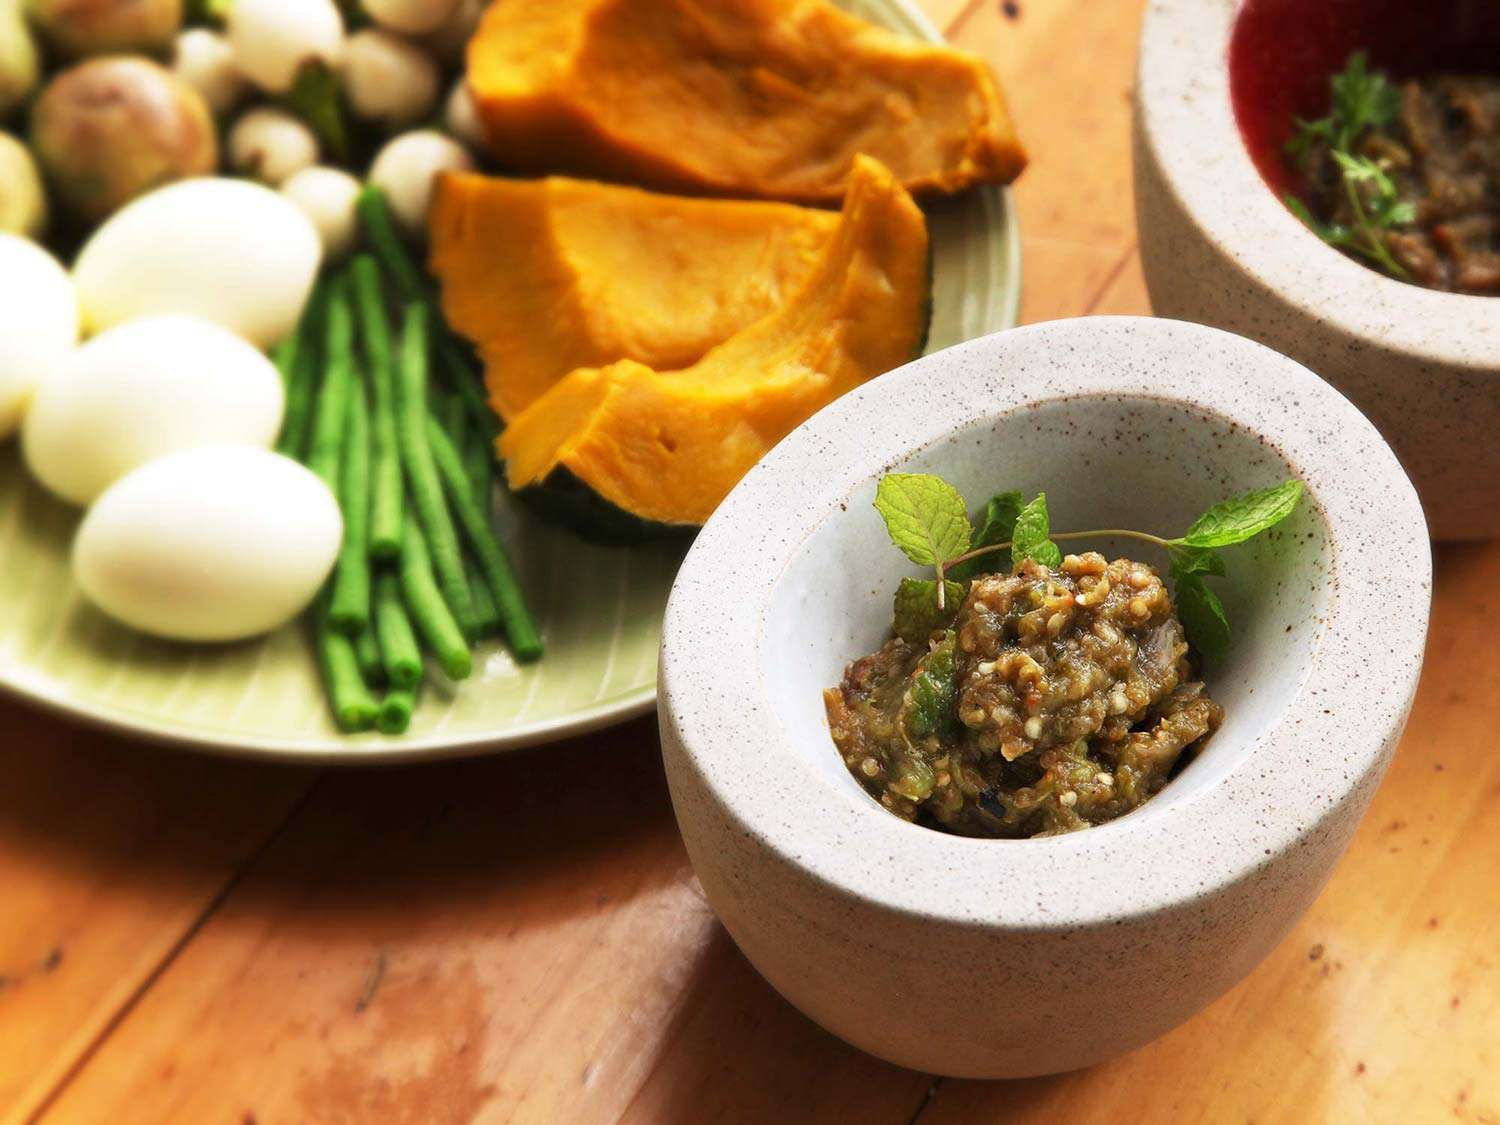 A dish of nam phrig noom (Northern Thai roasted-chili dip) next to assorted items for dipping